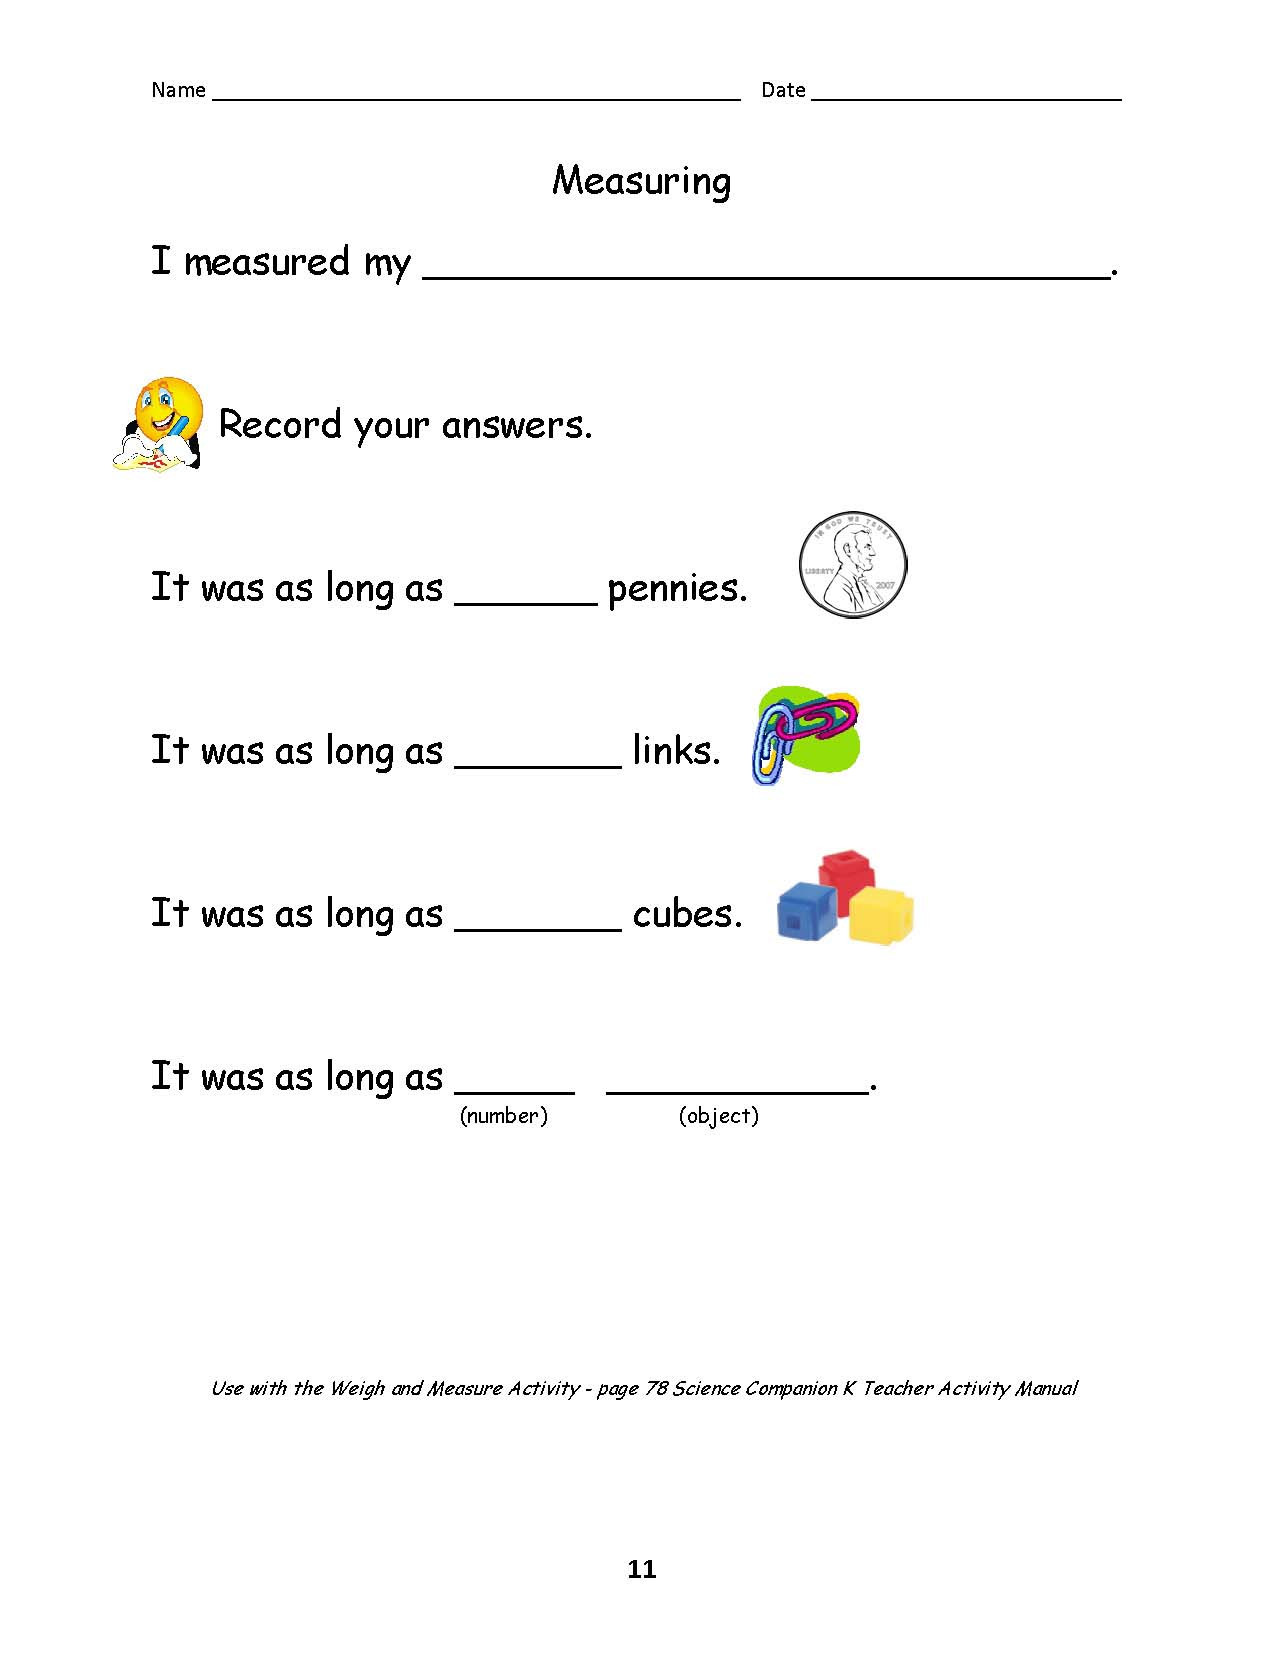 Engineering Design Process Worksheet Line Connections Science and Children